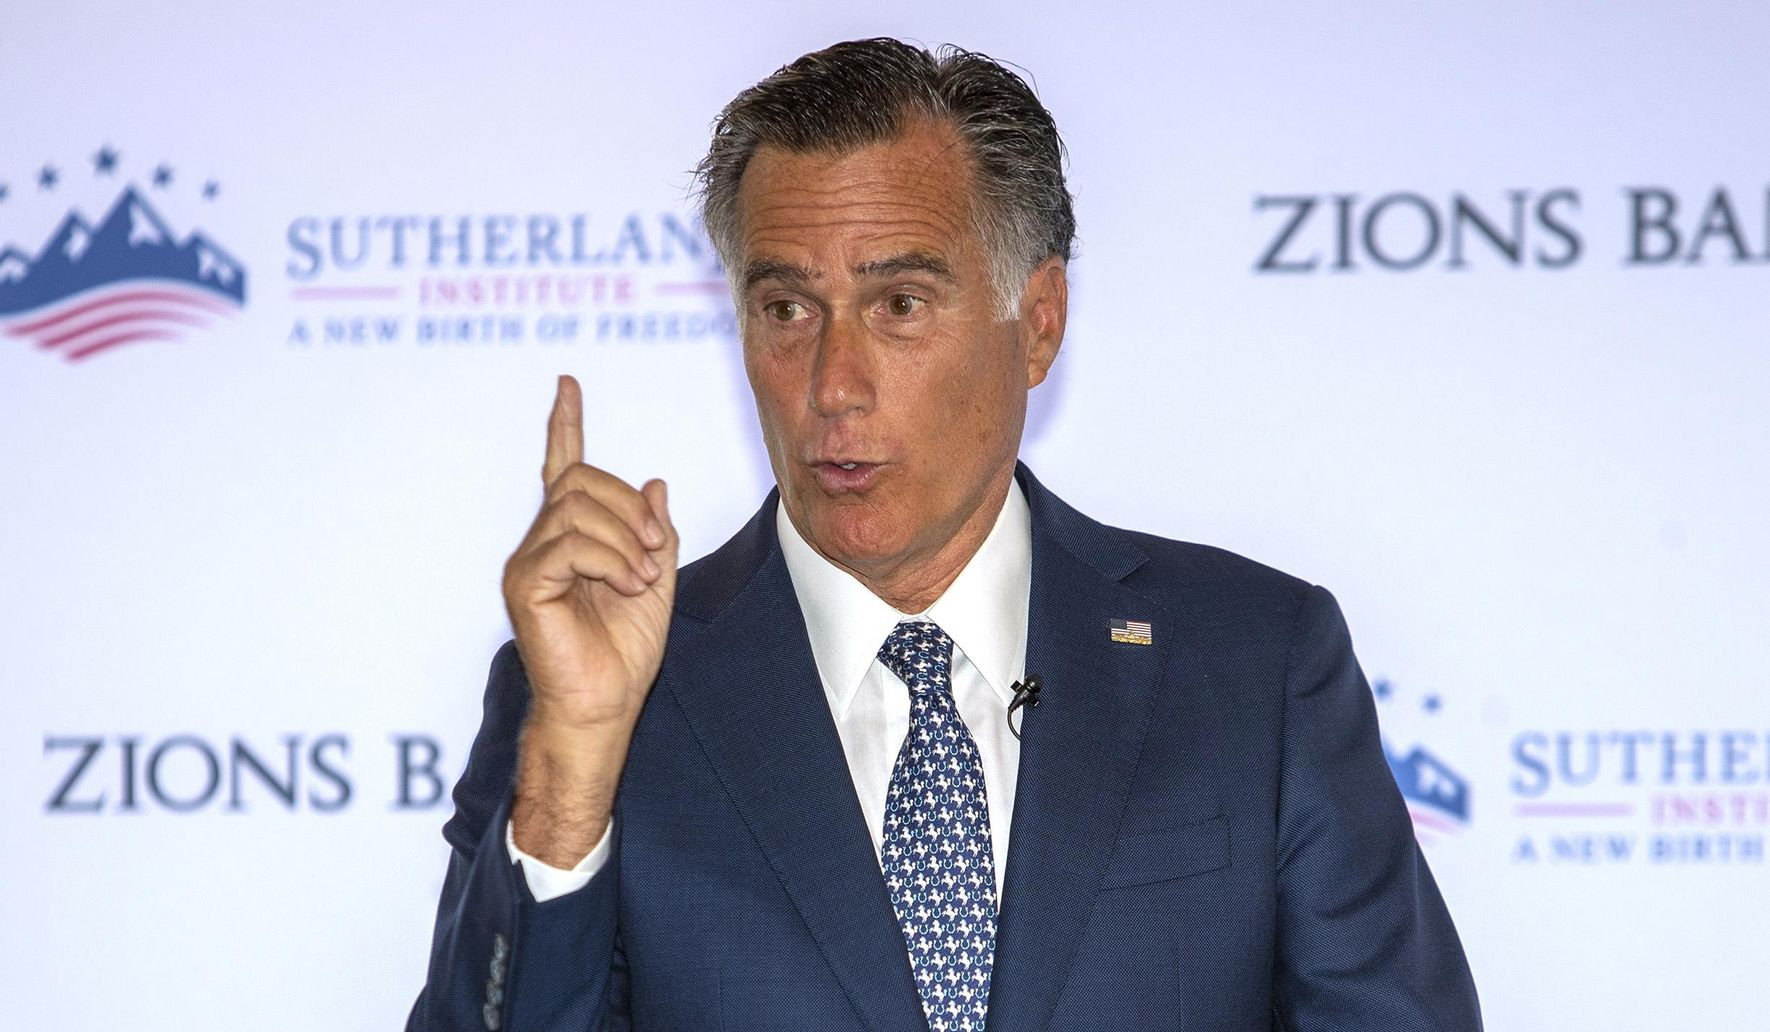 Mitt Romney: Climate change is happening, humans a significant contributor